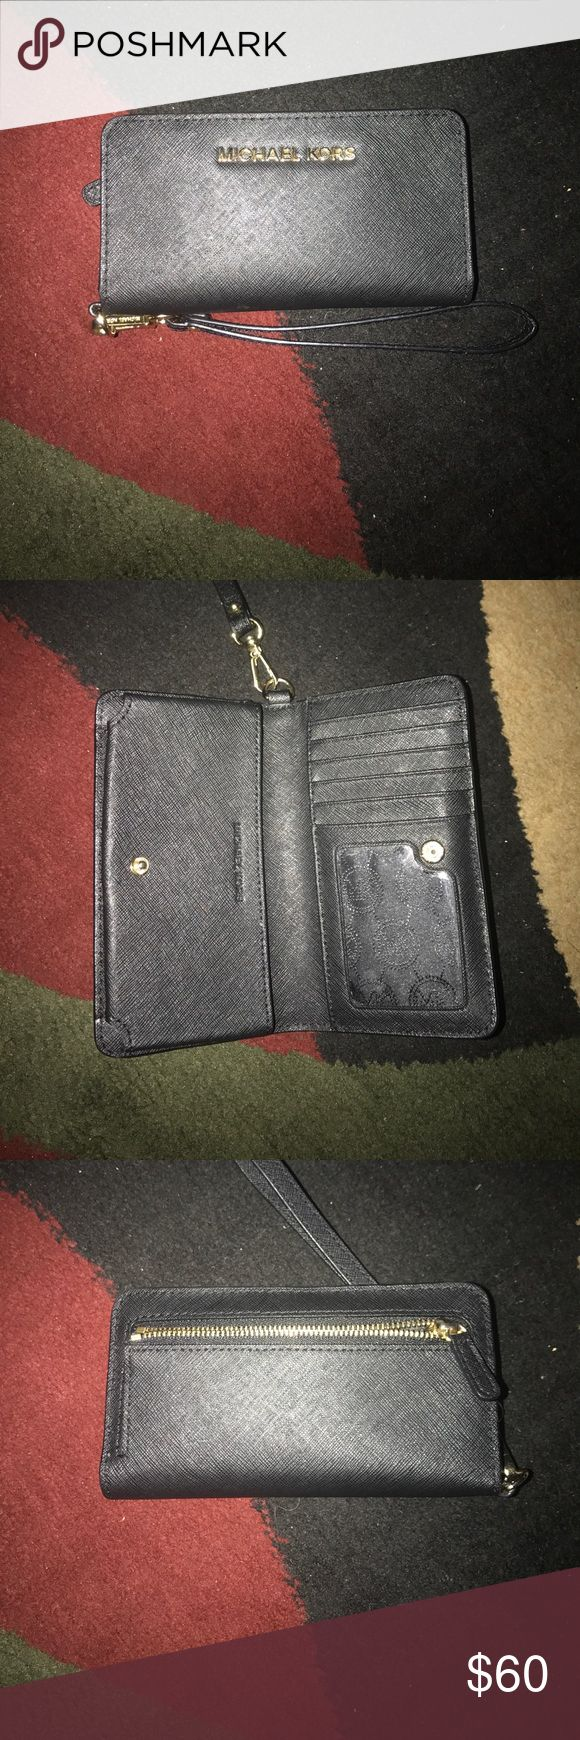 MICHAEL KORS iPhone6/6s phone case wallet Perfect condition no ware and tear great for on the go gals who doesn't love to tote large handbags everywhere !!! Michael Kors Bags Wallets